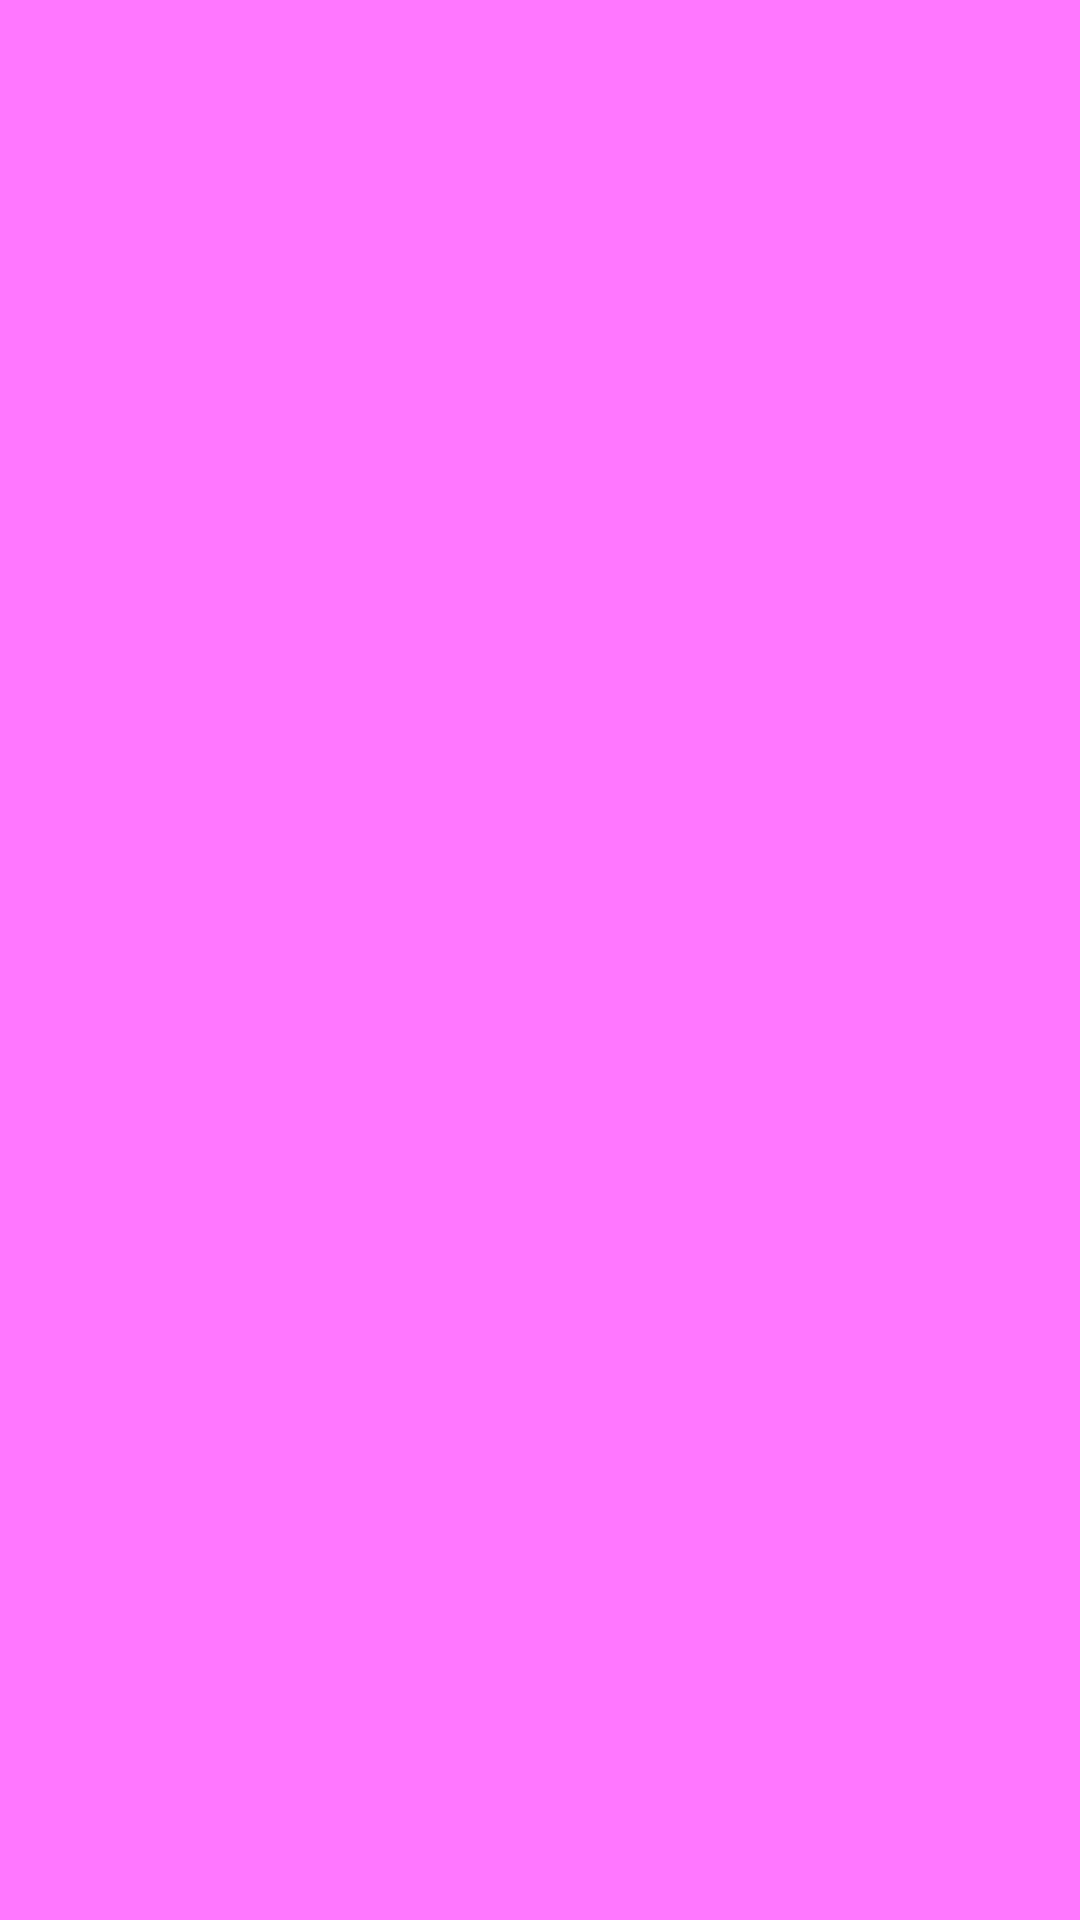 1080x1920 Fuchsia Pink Solid Color Background